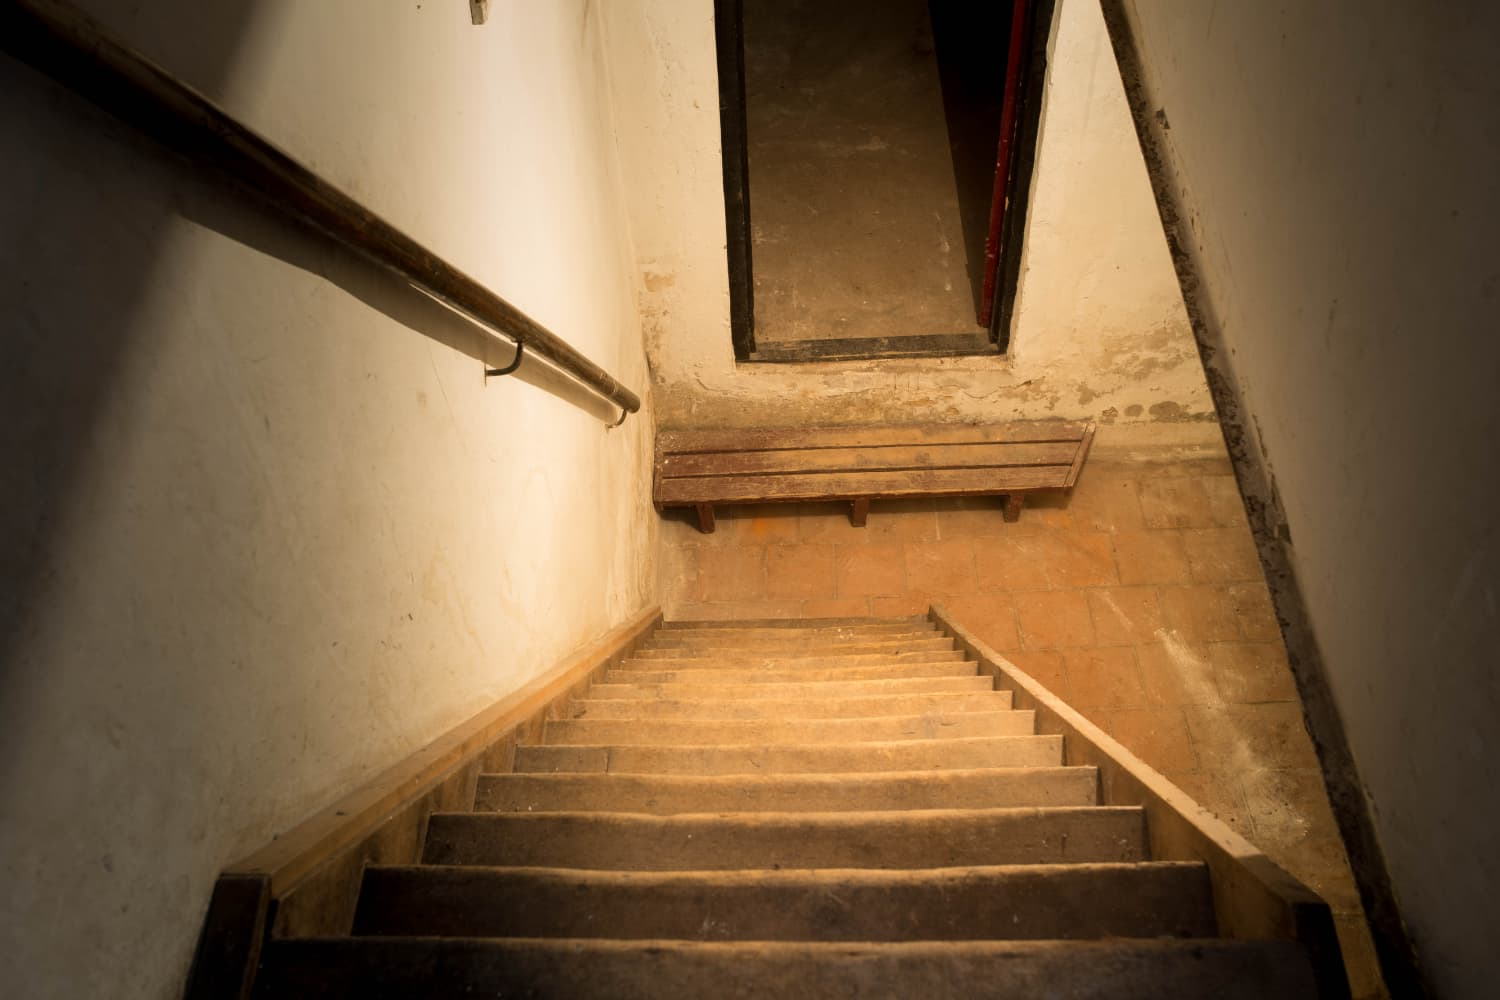 These Are the Scariest Basements From Iconic Horror Movies and TV Shows